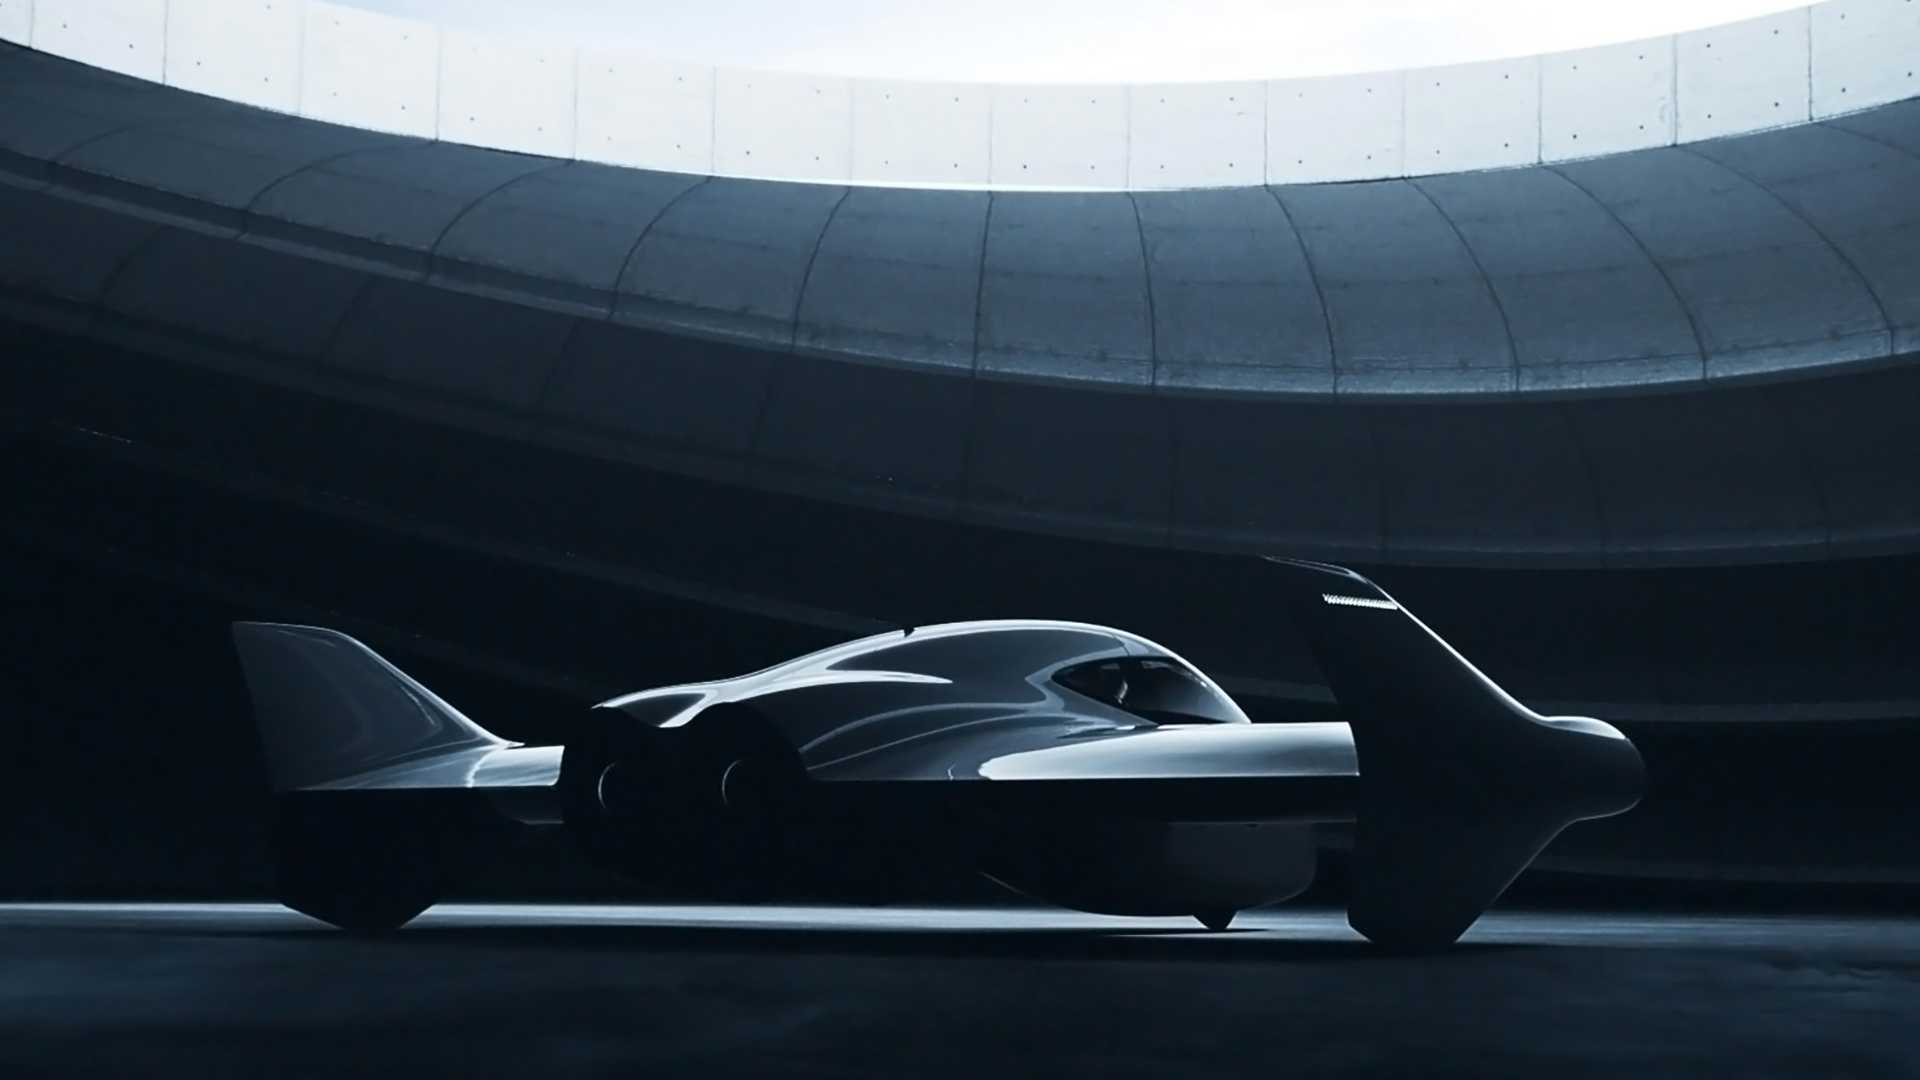 Porsche flying car could happen with help from Boeing